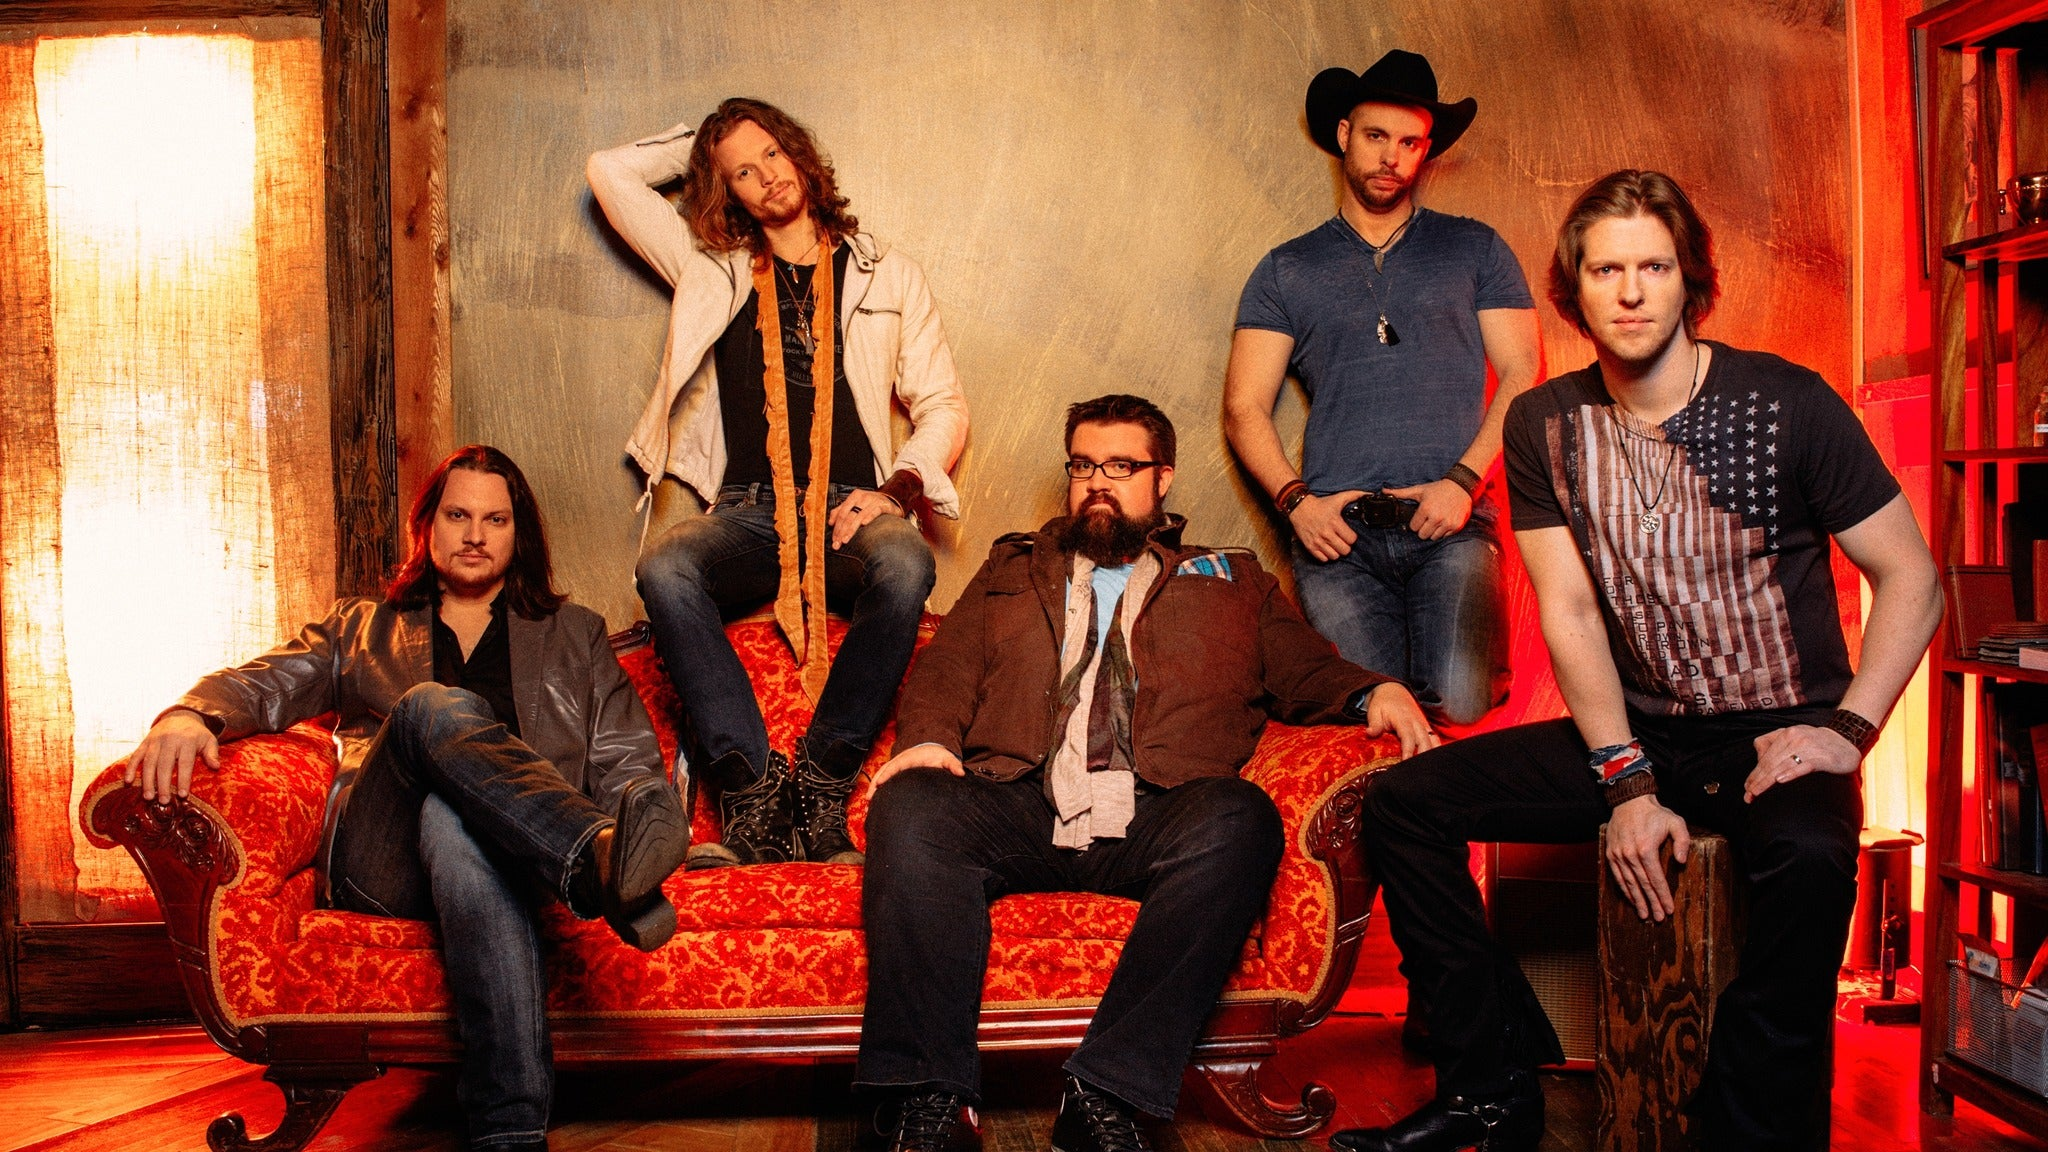 Home Free at Saenger Theatre Mobile